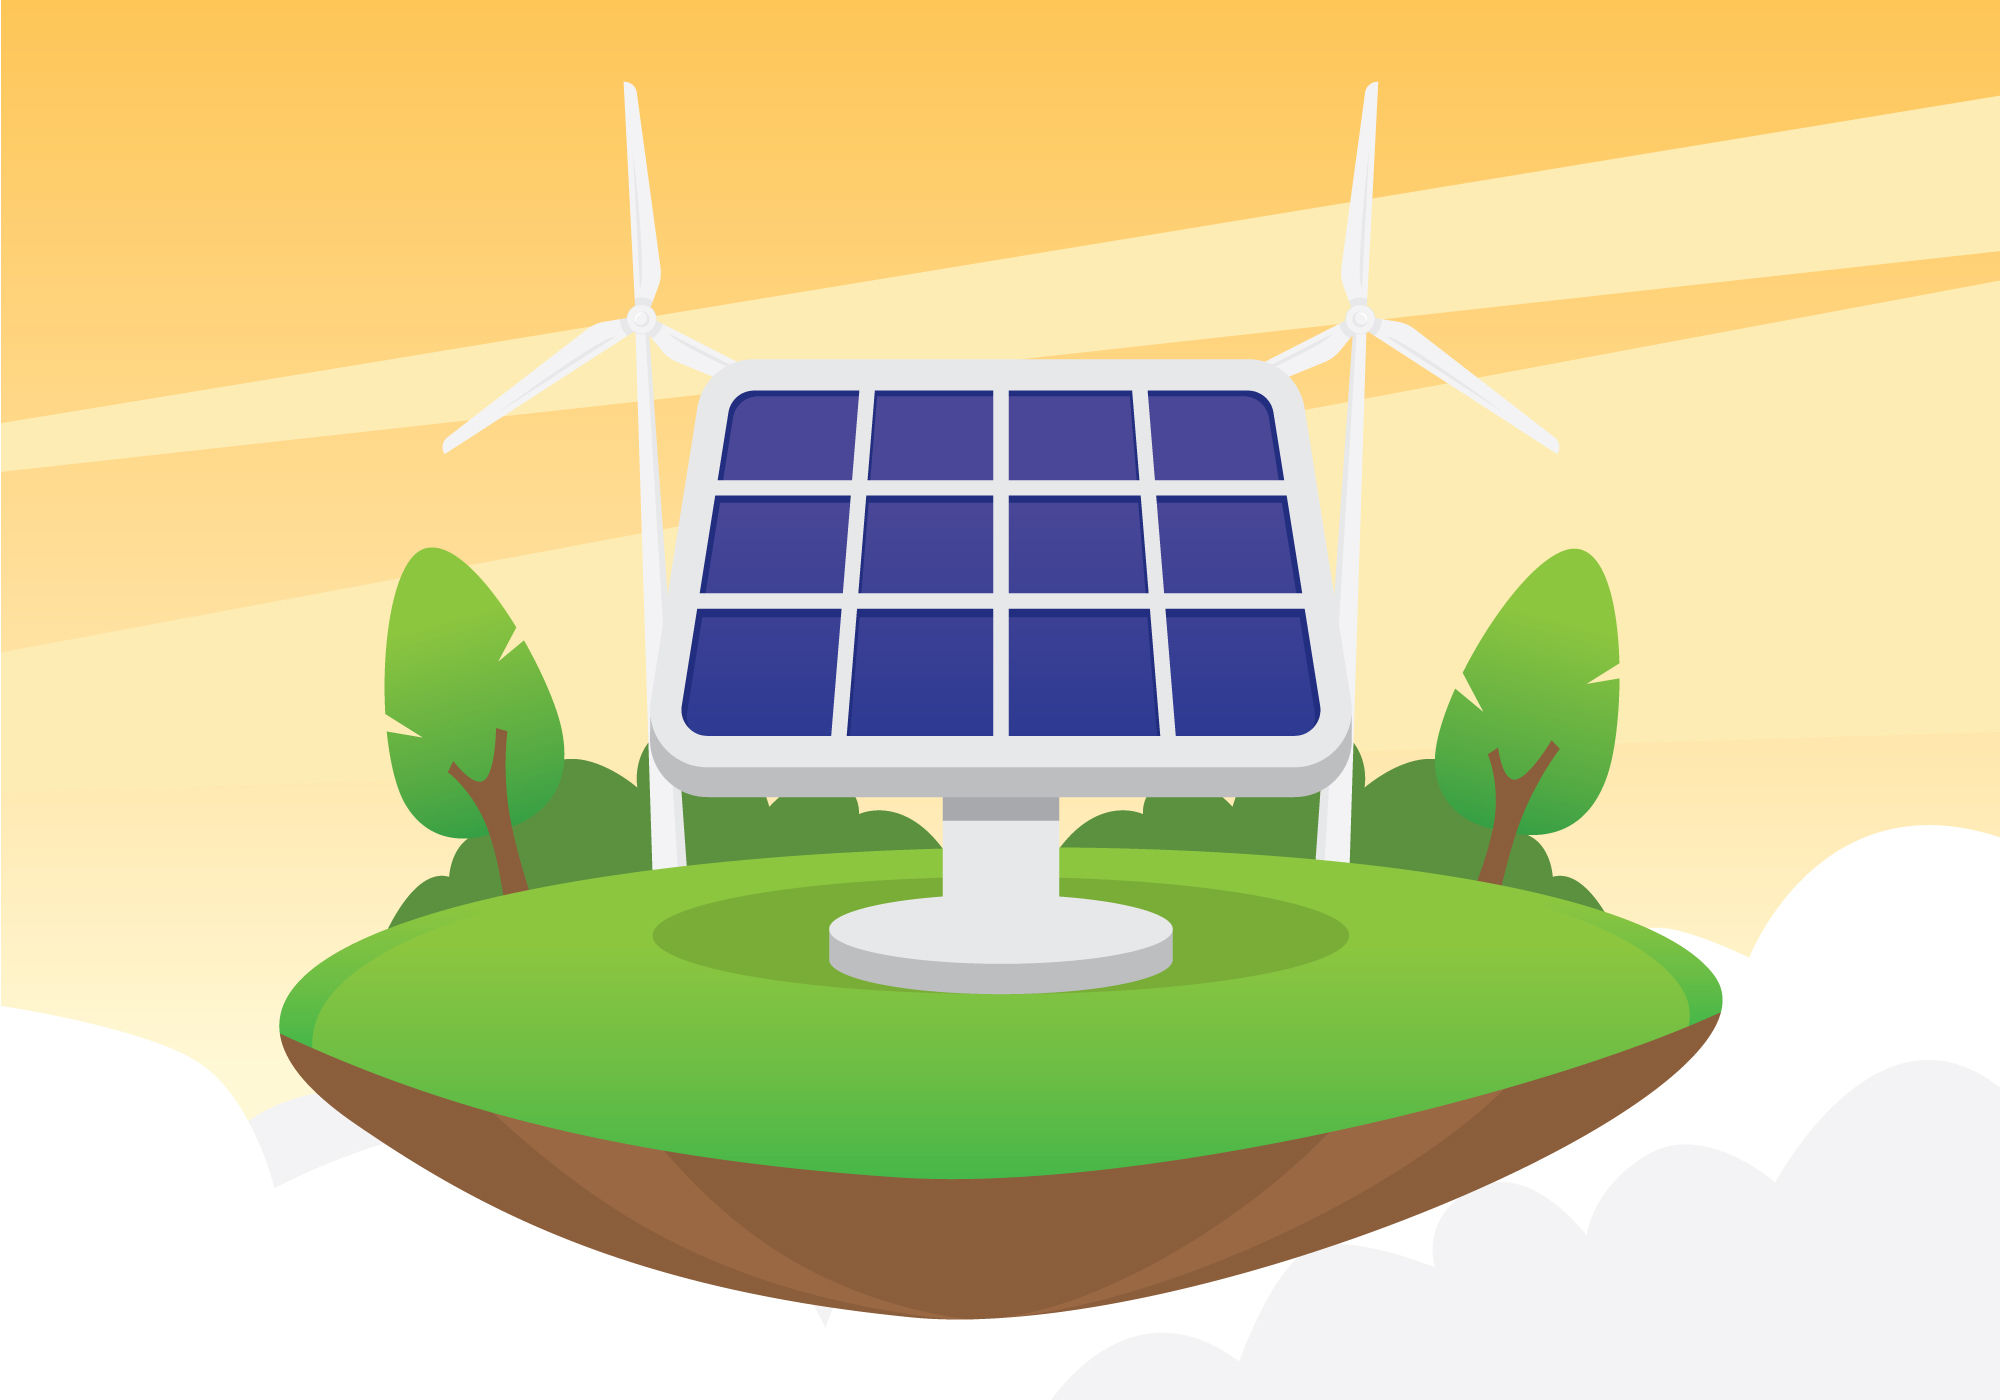 2000x1400 Solar Cell Free Vector Art